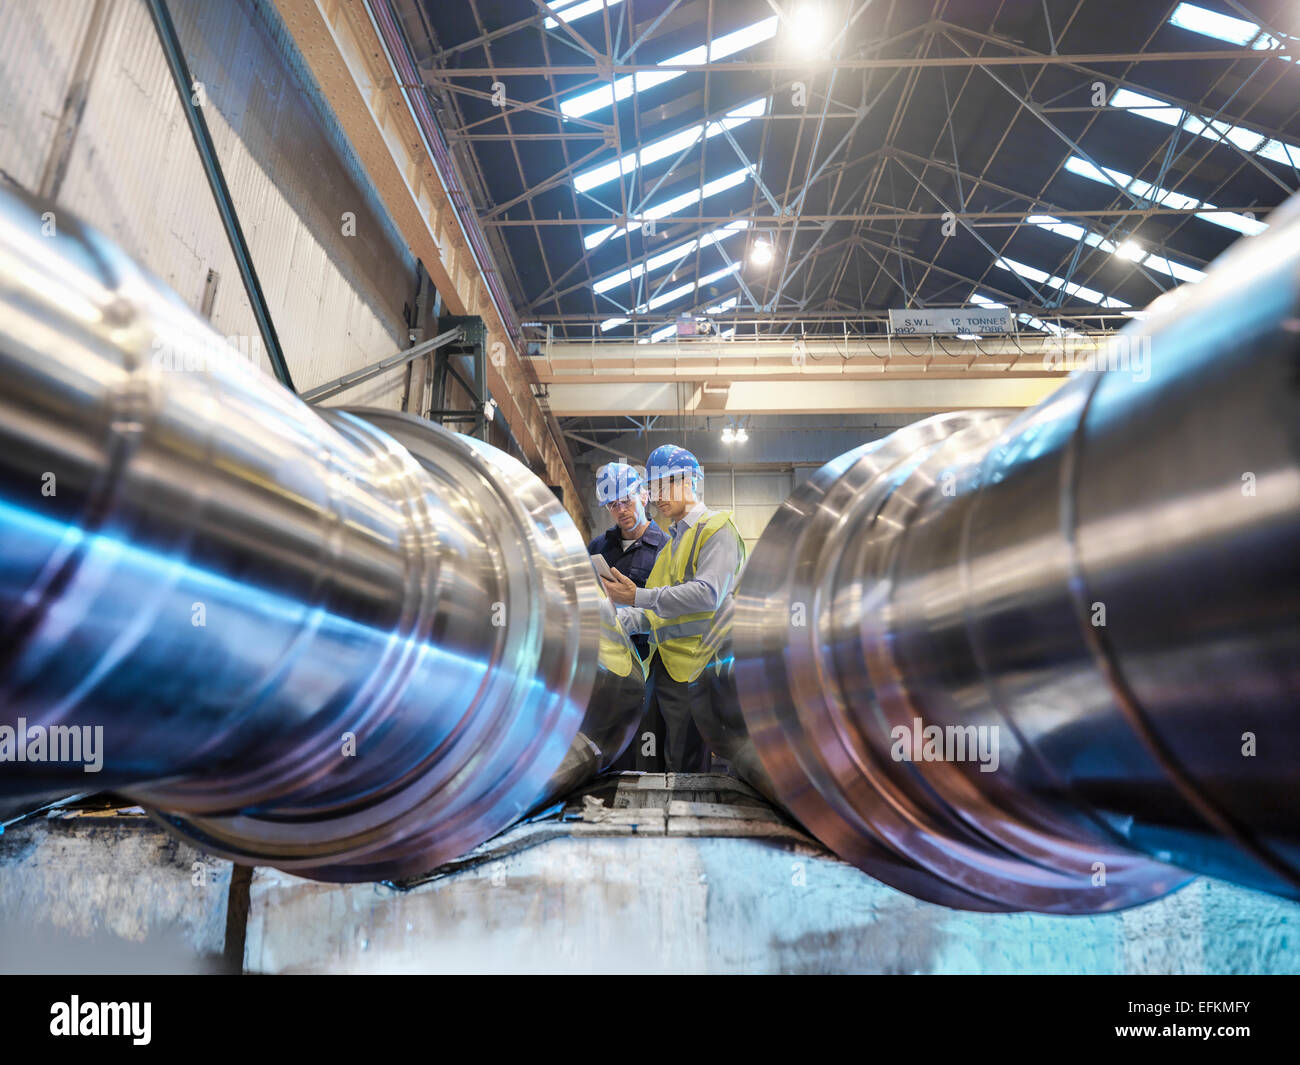 Engineers inspecting finished steel rollers in engineering factory, low angle view - Stock Image